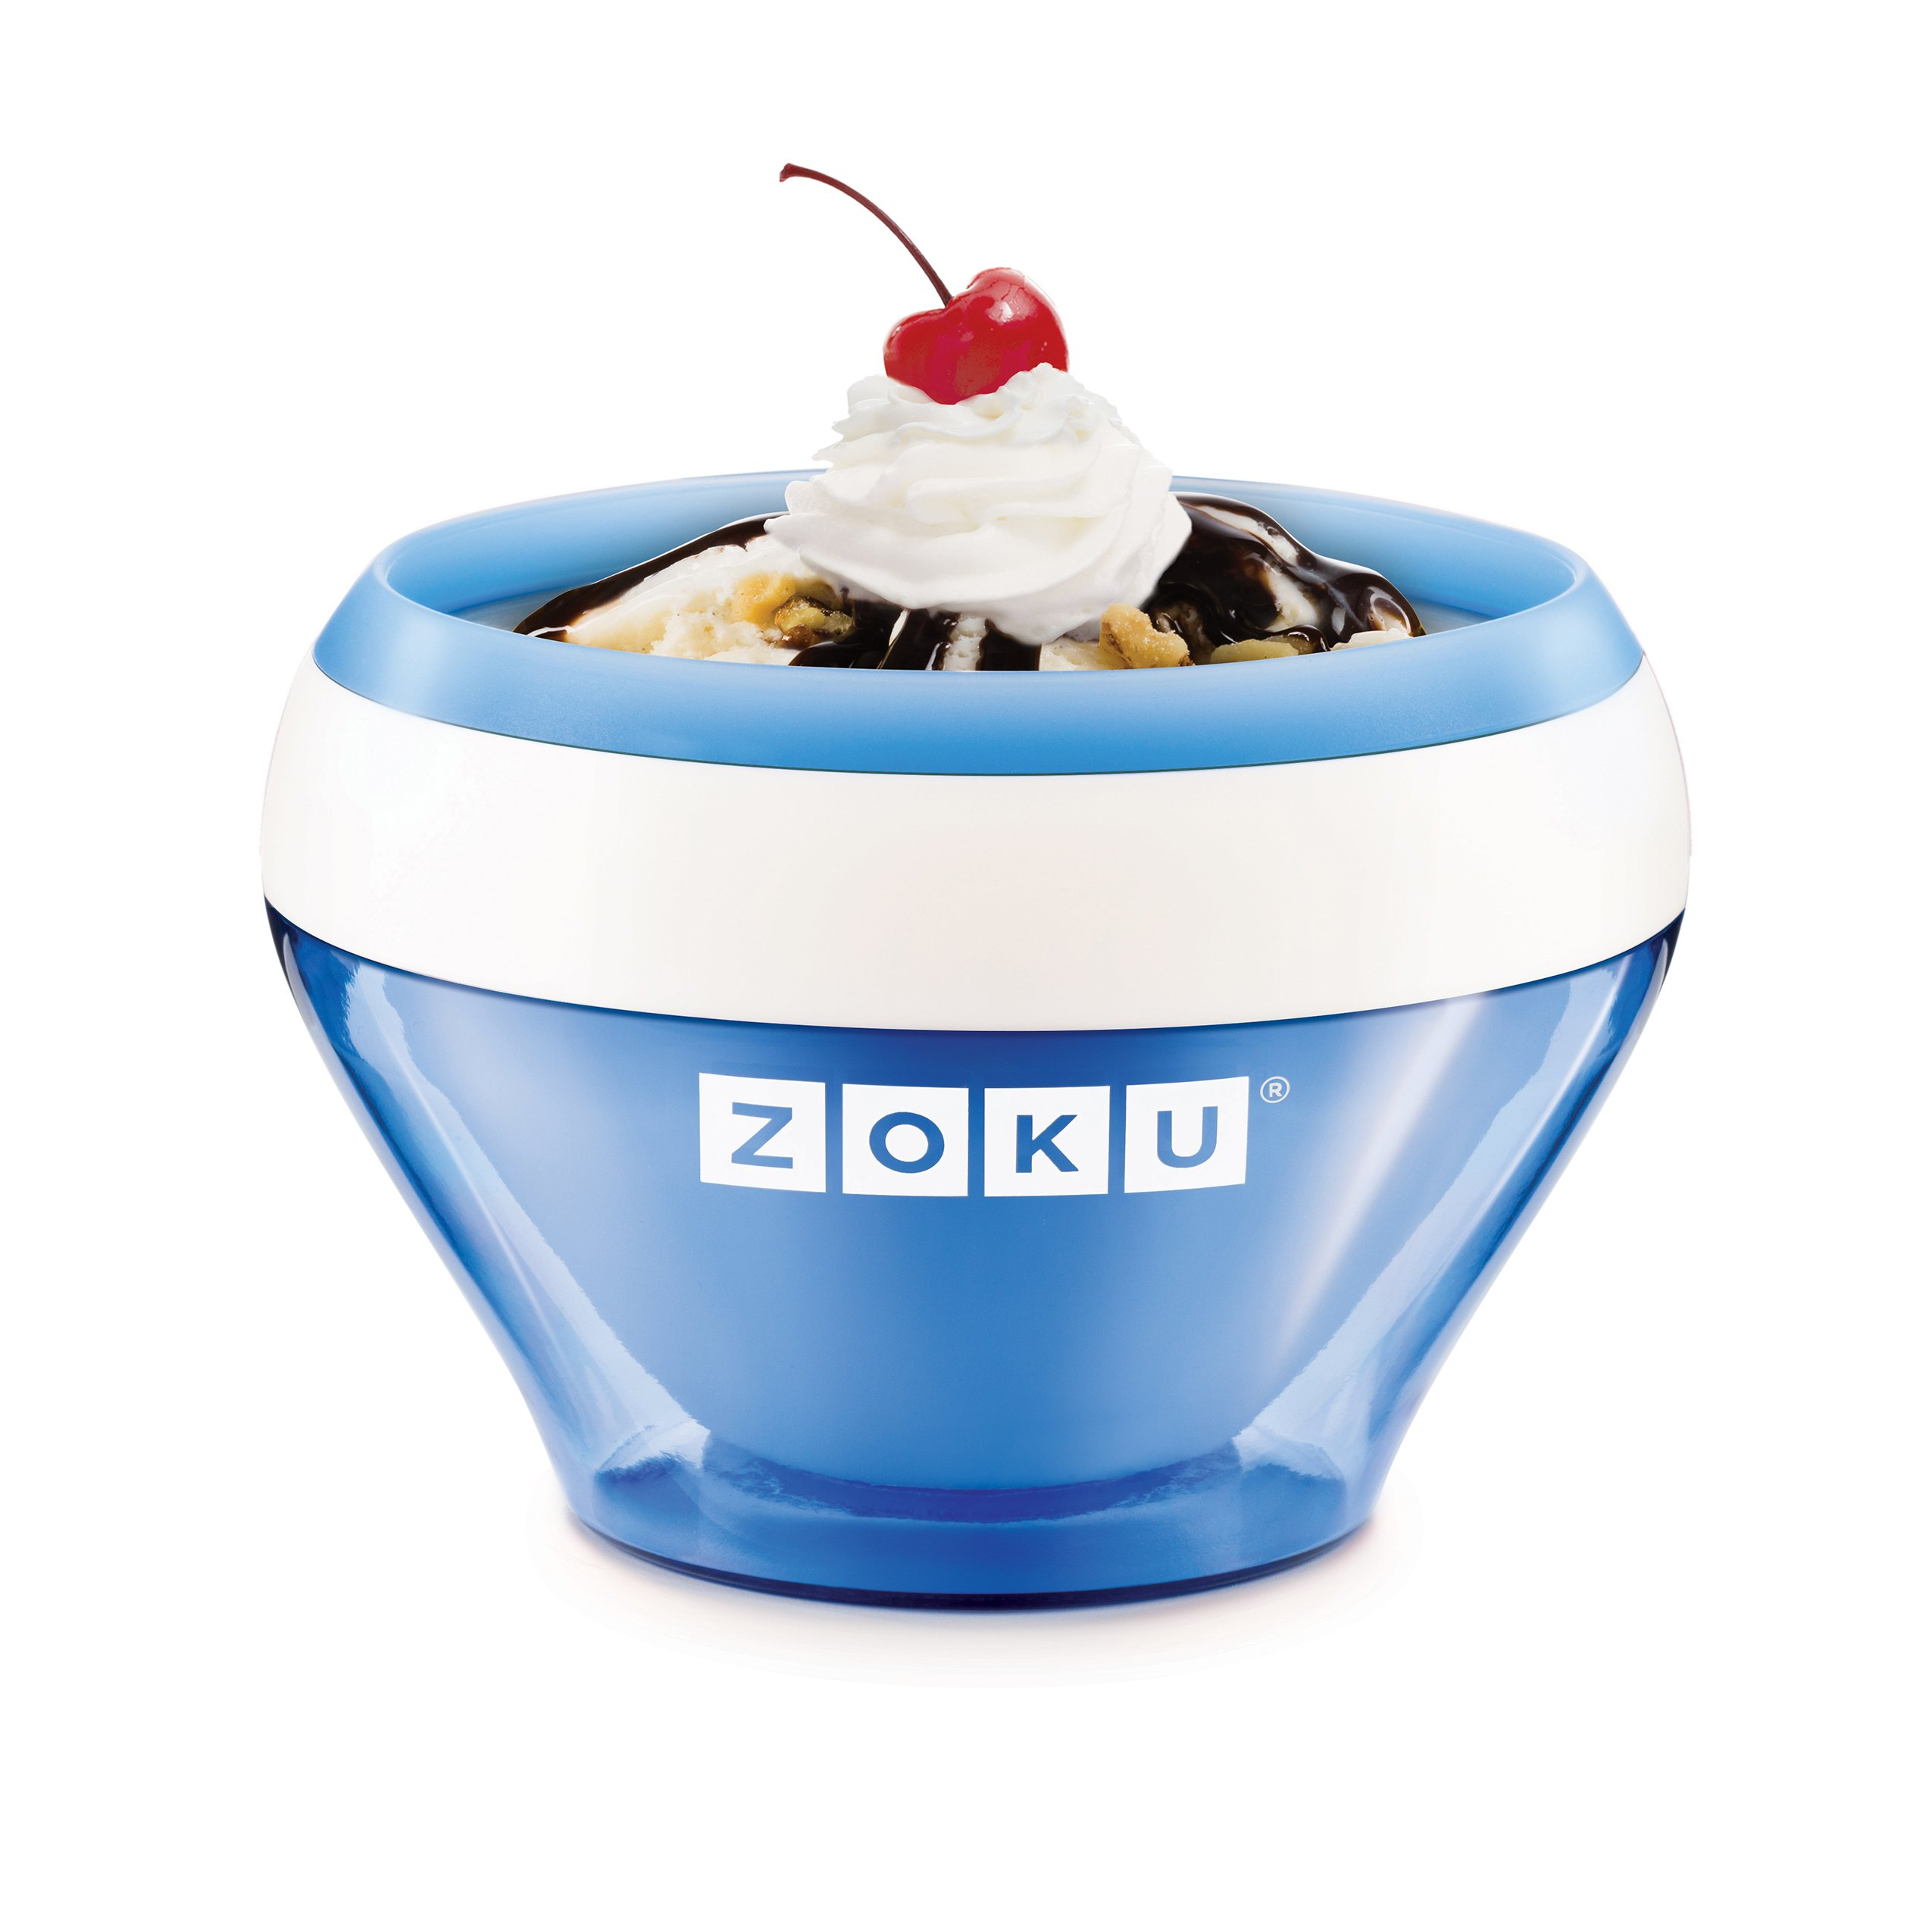 Zoku Ice Cream Maker, Compact Make and Serve Bowl with Stainless Steel Freezer Core Creates Soft Serve, Frozen Yogurt, Ice Cream and More in Minutes, BPA-free, 6 Colors, Blue